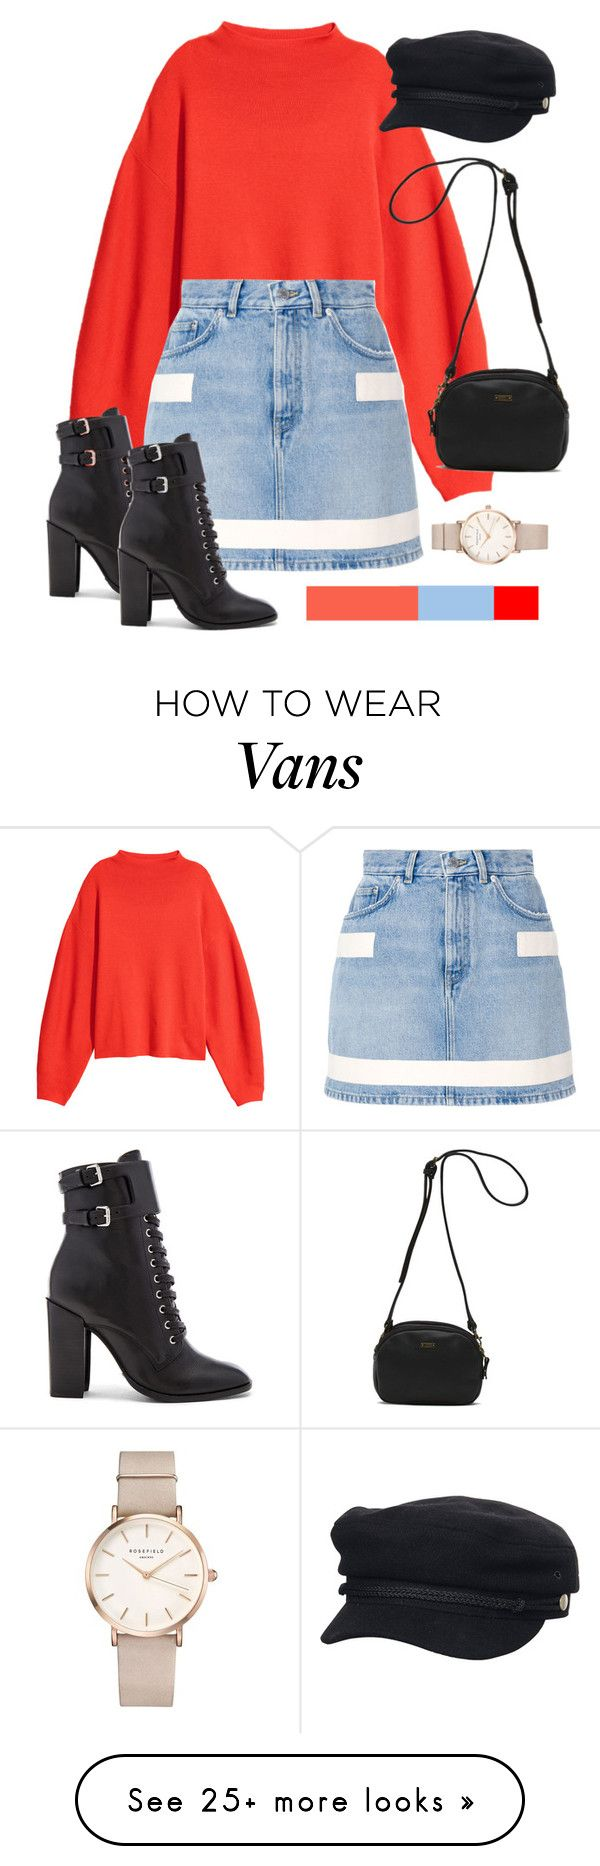 """""""#RED"""" by megans-got-clothes on Polyvore featuring Givenchy, Schutz, Vans, ROSEFIELD, Rusty, red, hat, booties, crewneck and denimskirt"""